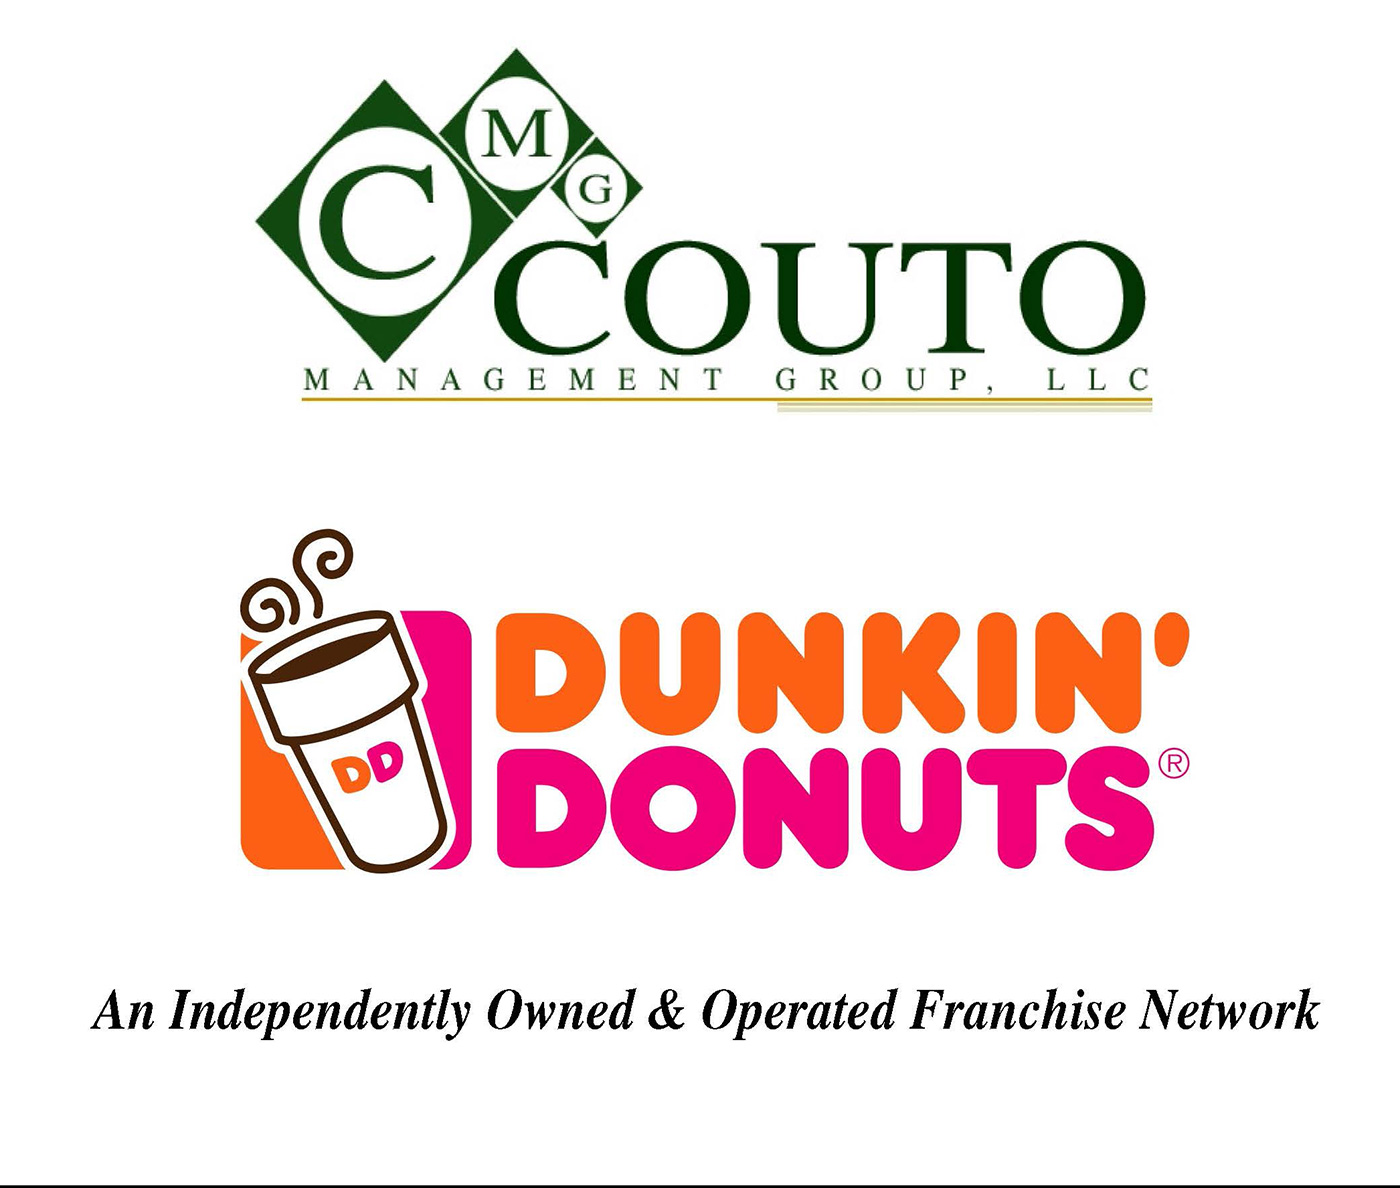 Couto Management Group owns and operates more than 60 Dunkin Donuts Stores in Massachusetts, the greater boston area and cape cod.